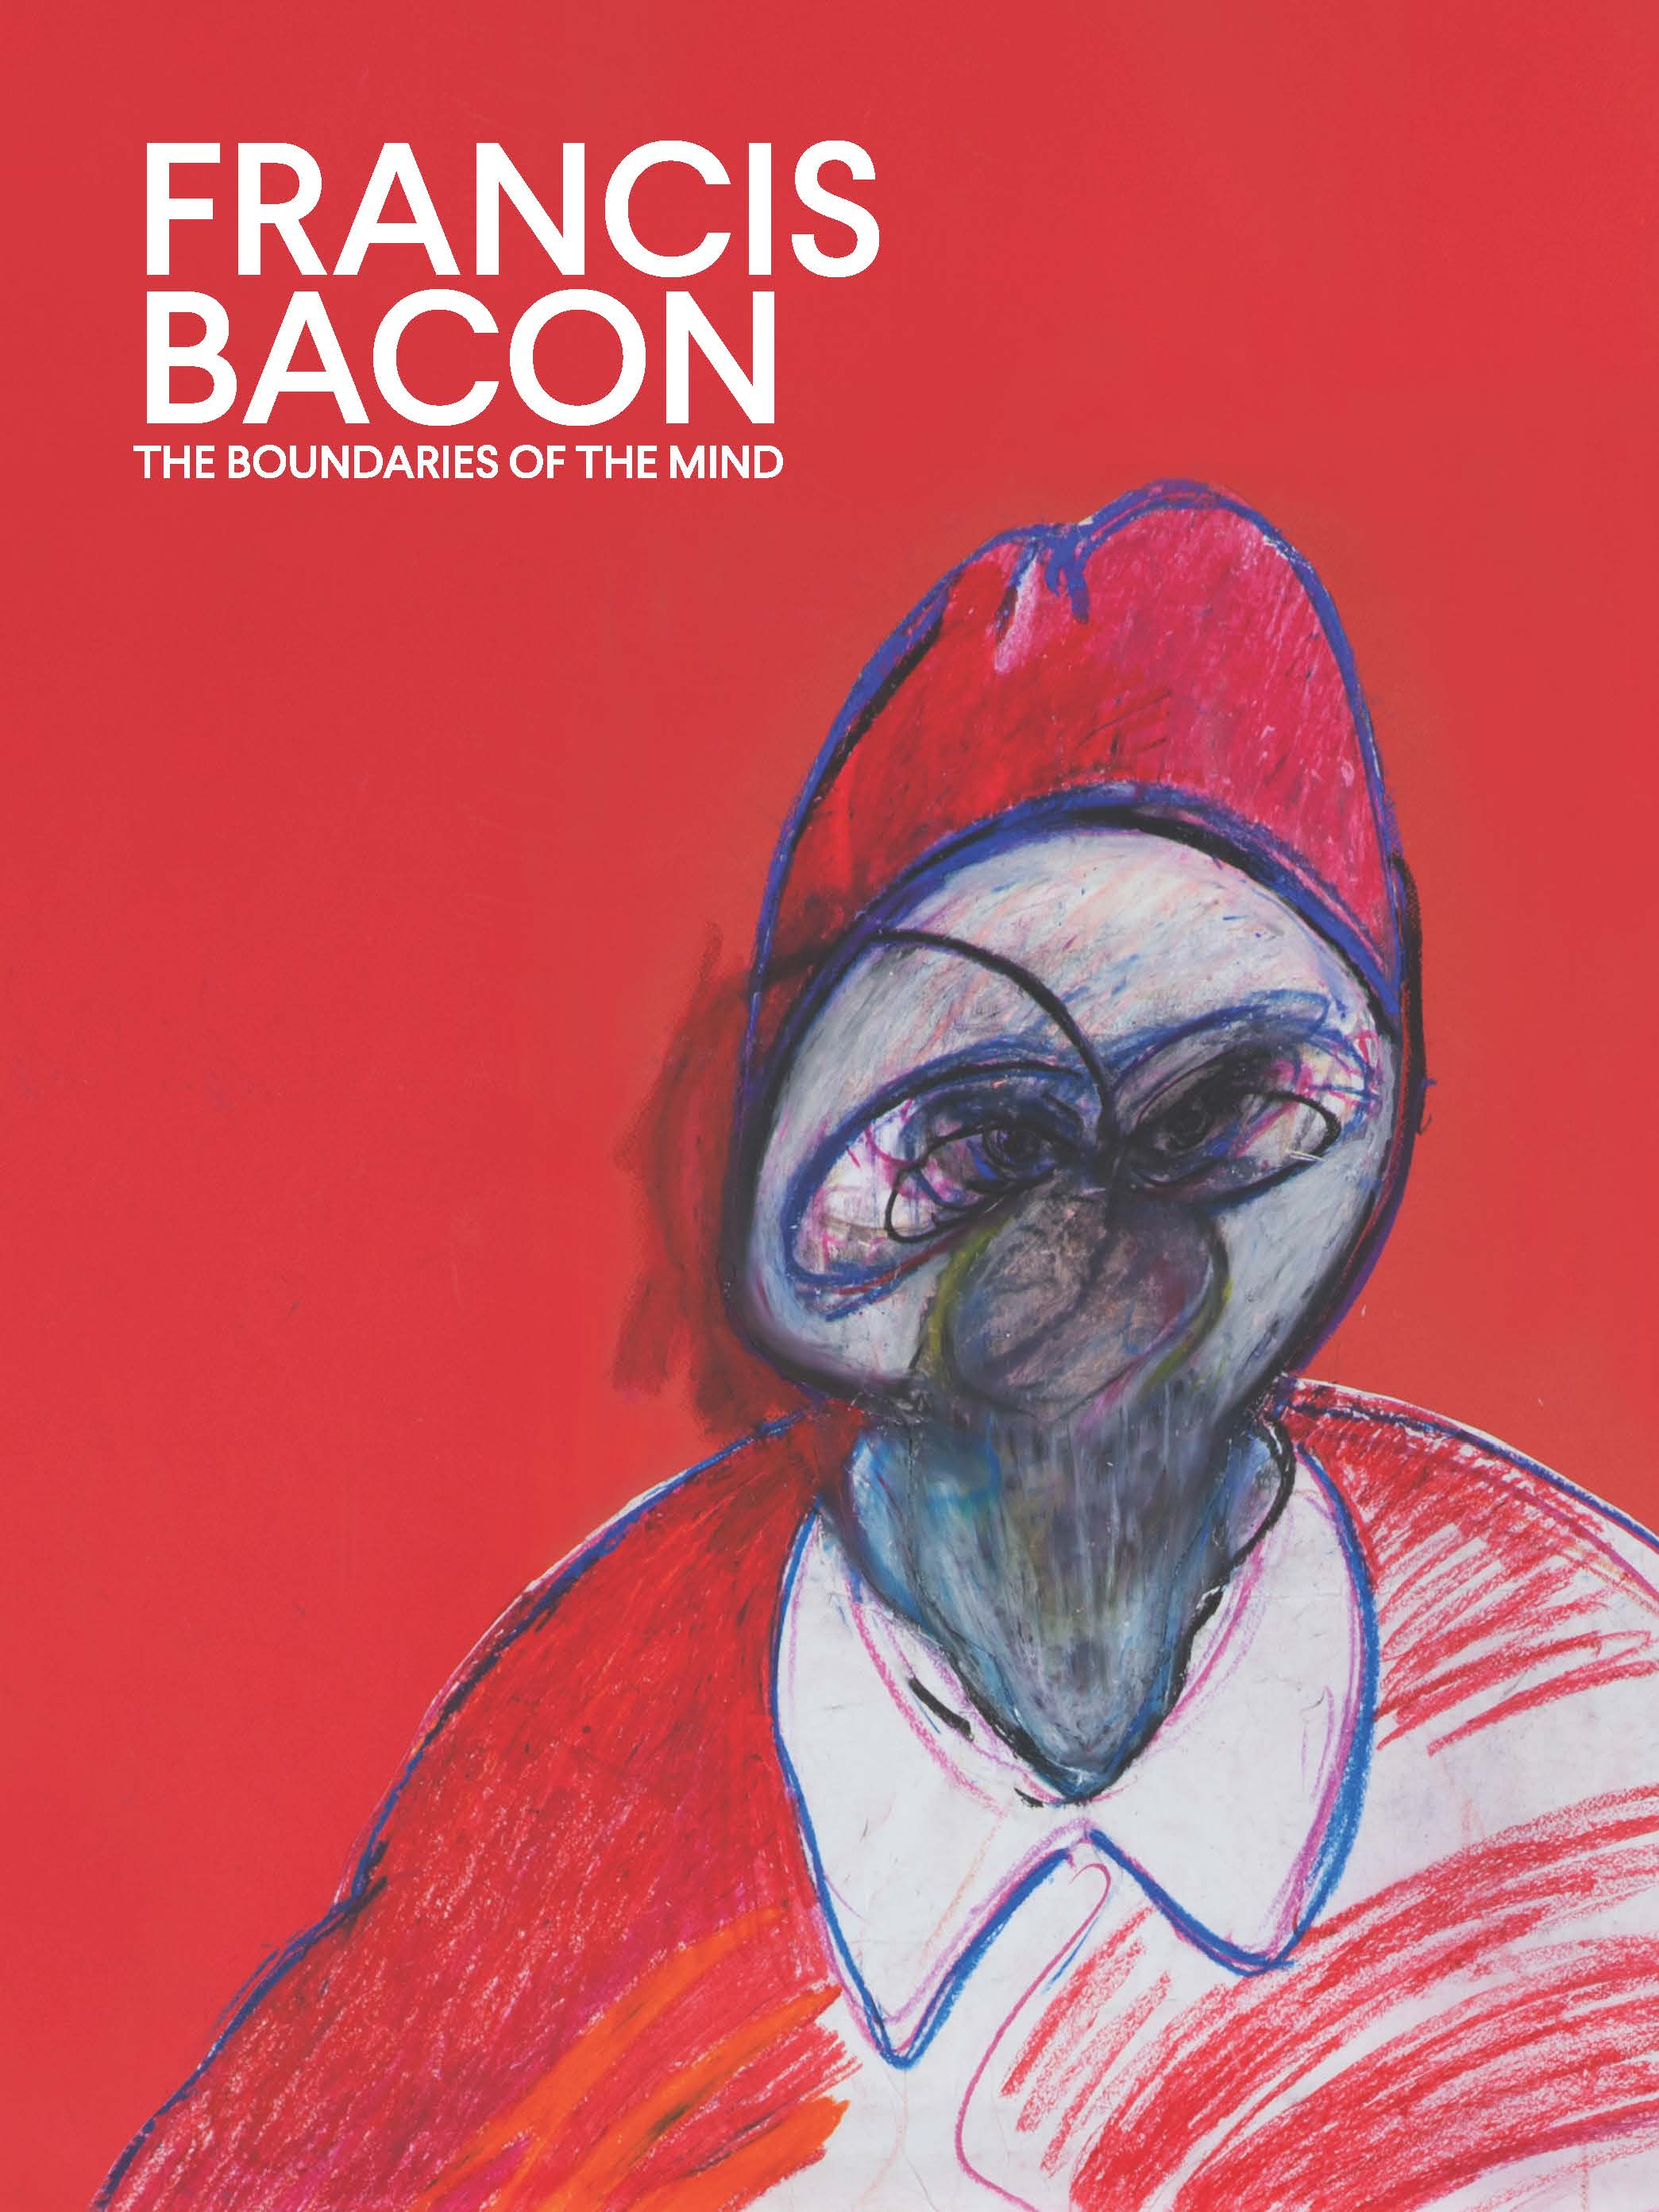 Francis Bacon Exhibition Coming To Dubrovnik The Francis